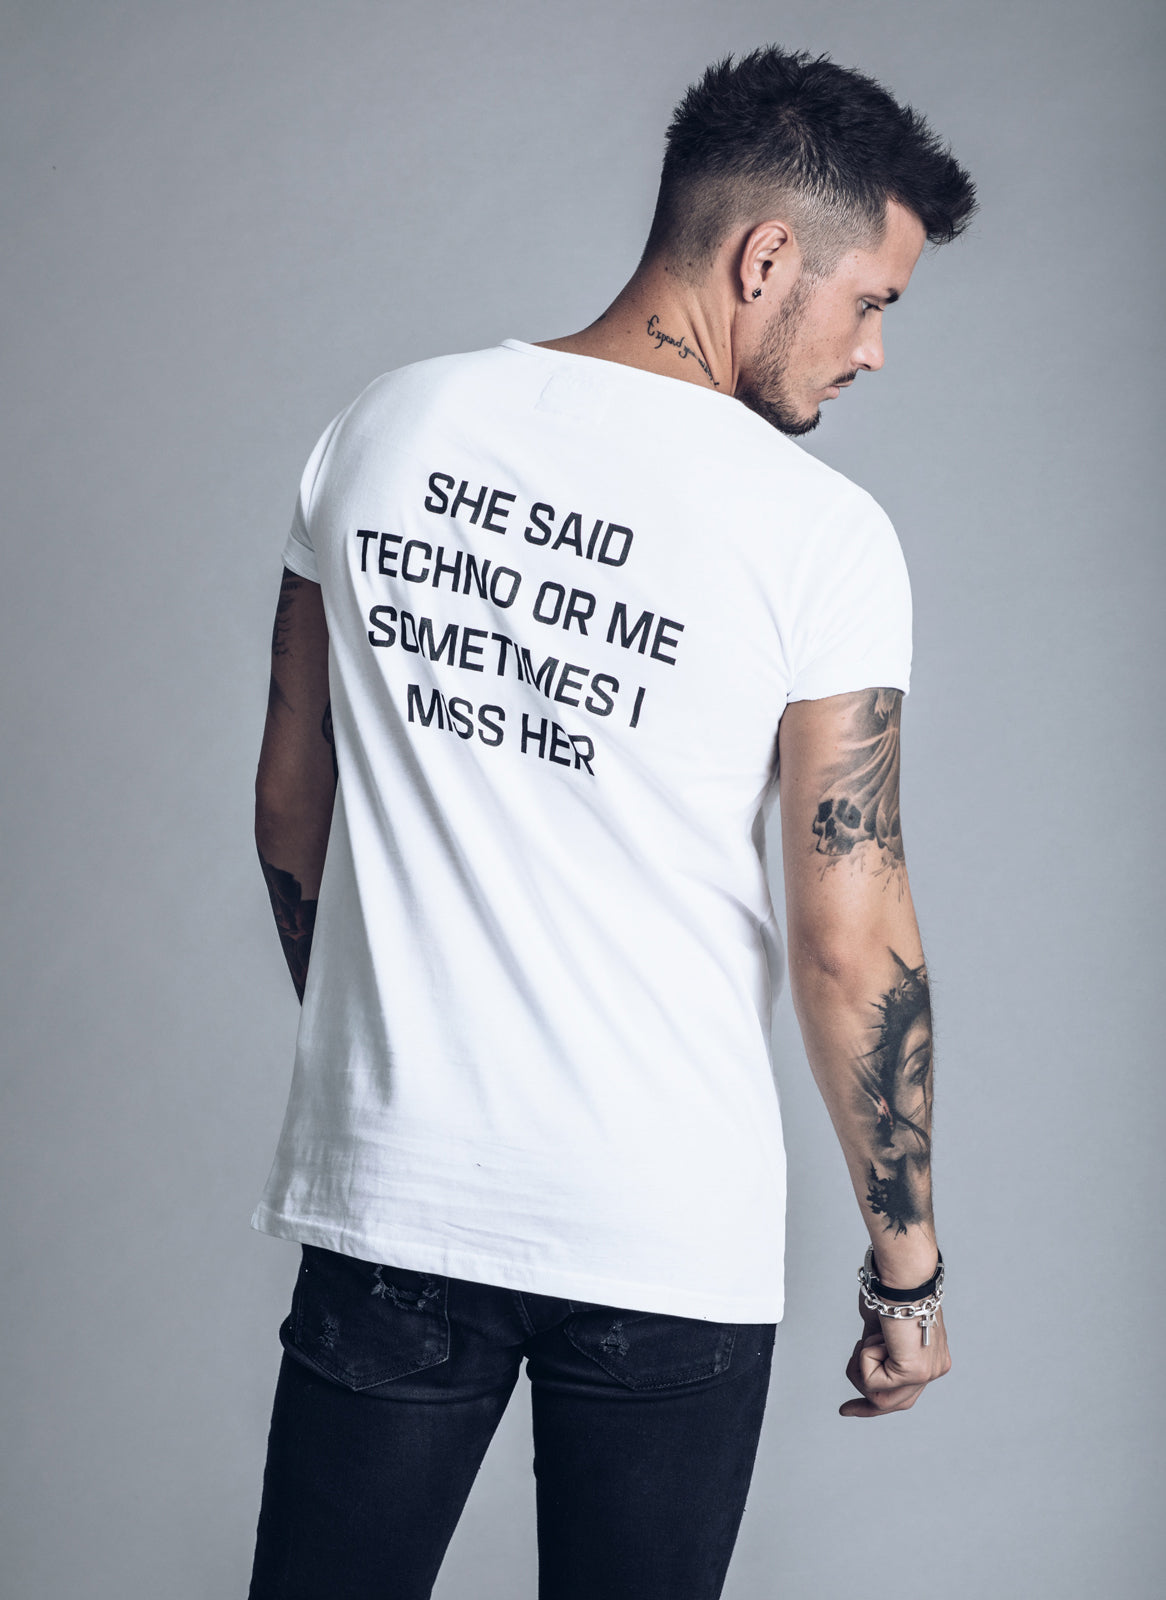 She Said Techno or Me Sometimes I Miss Her - White T-shirt - We Love Techno